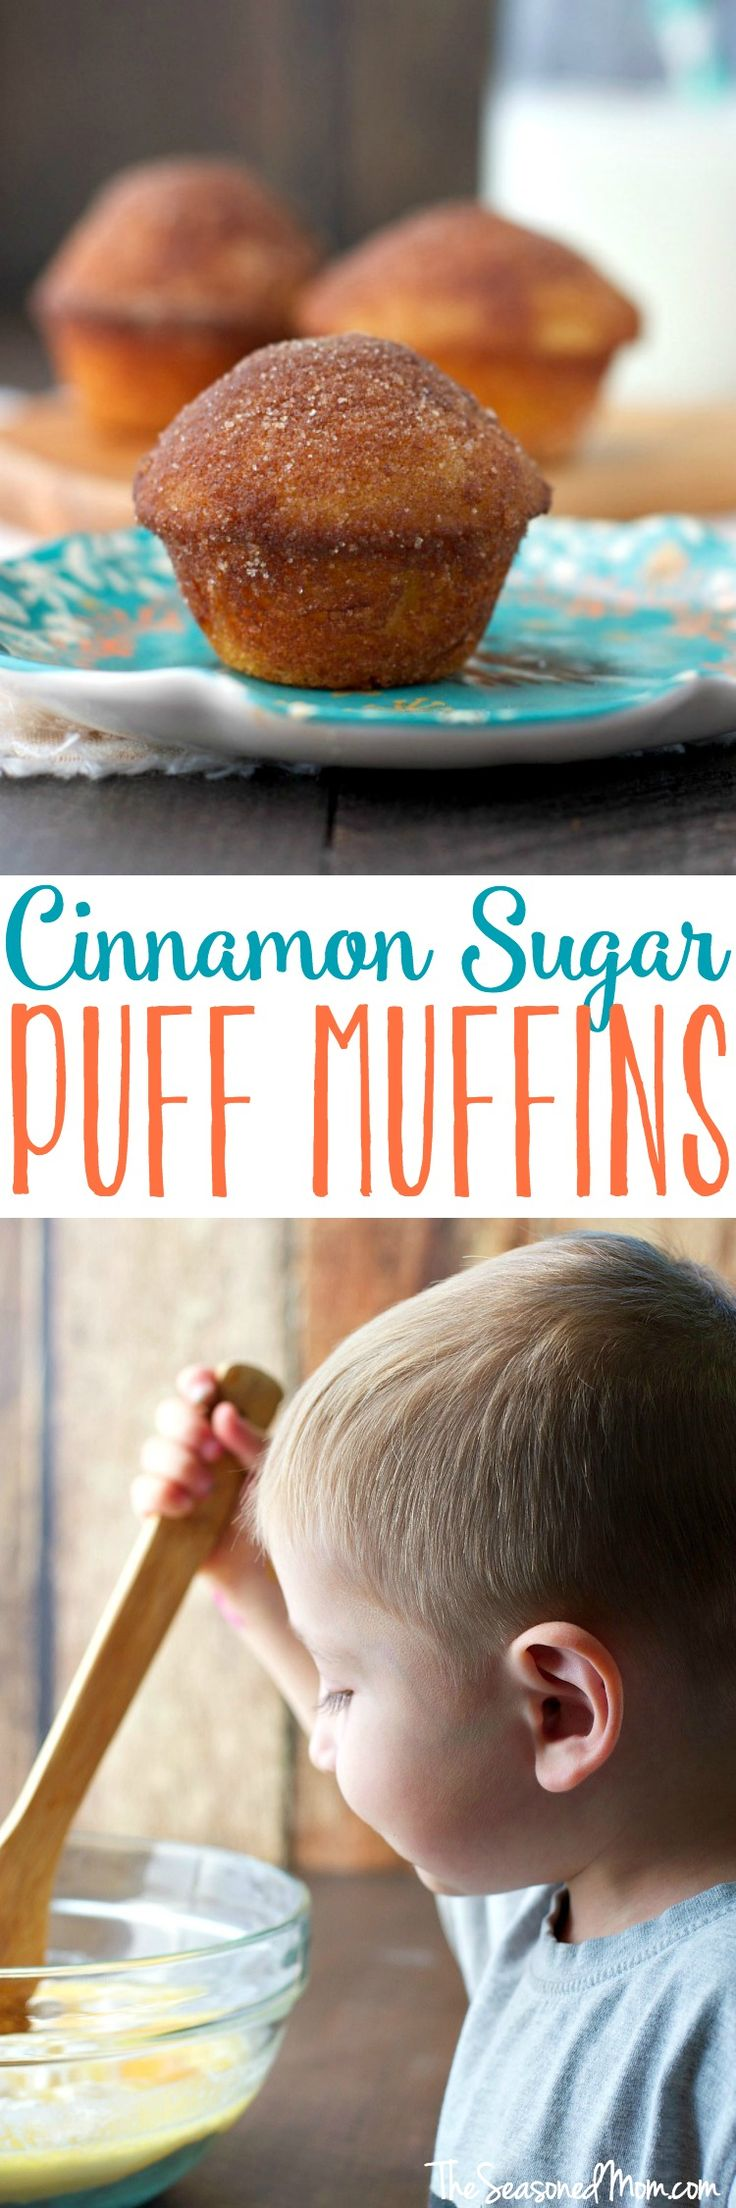 A touch of nutmeg and a cinnamon-sugar coating make these Cinnamon Sugar Puff Muffins the perfect cross between a doughnut and a muffin -- a great make-ahead breakfast or snack! #KingArthurFlour @KingArthurFlour #ad